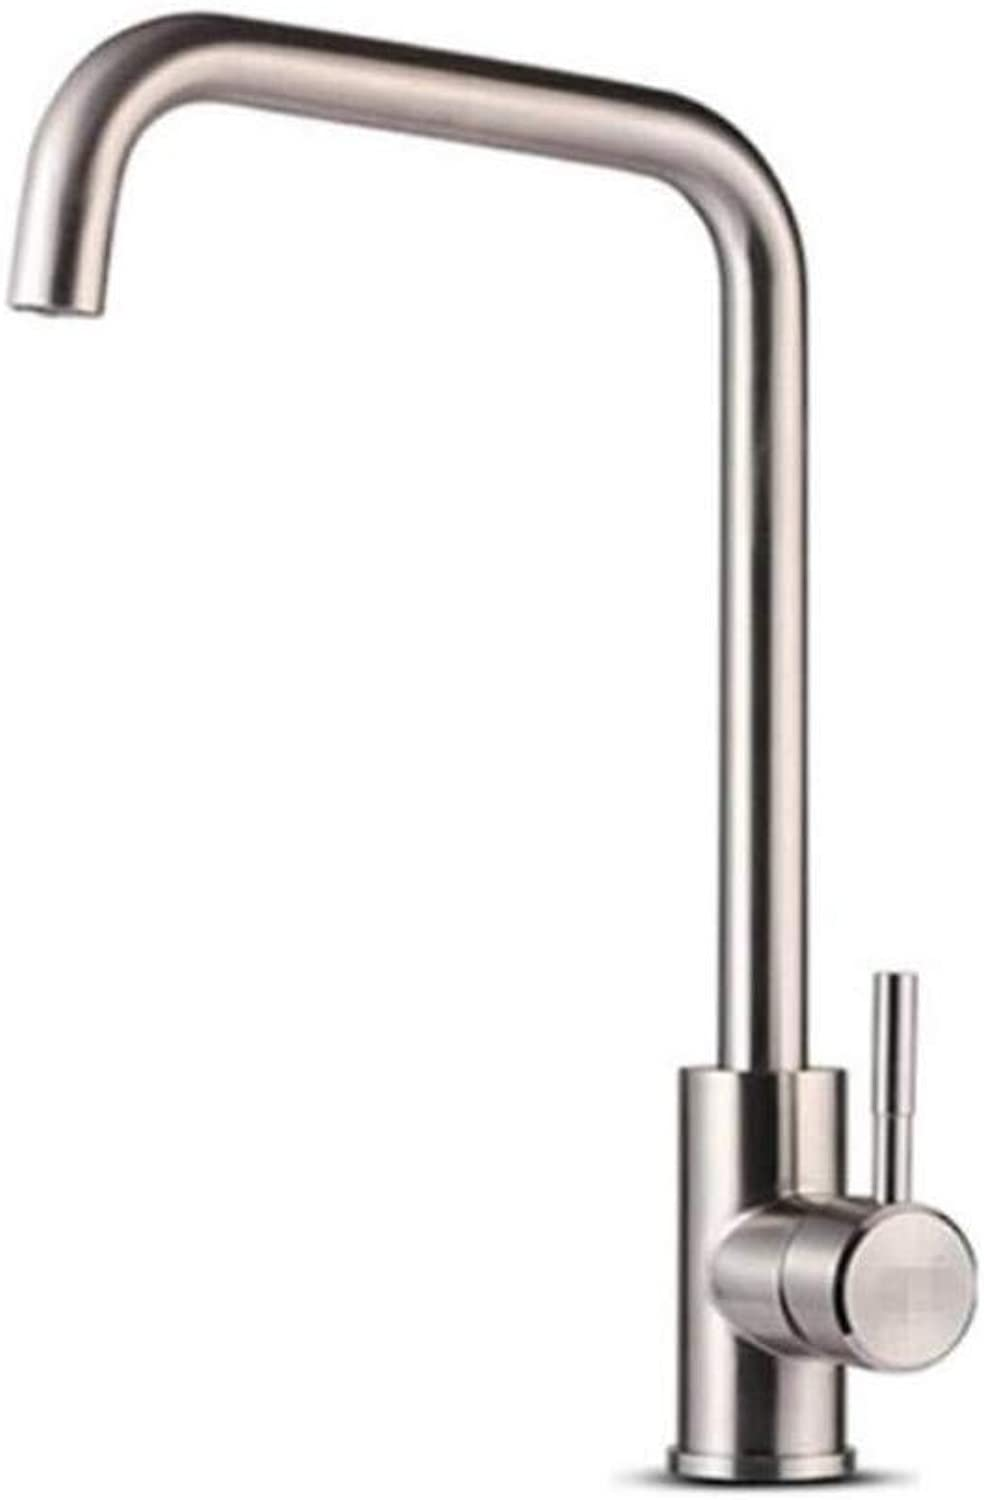 Taps Kitchen Sinktaps Mixer Swivel Faucet Sink Kitchen Faucet Cold and Hot Faucet 304 Stainless